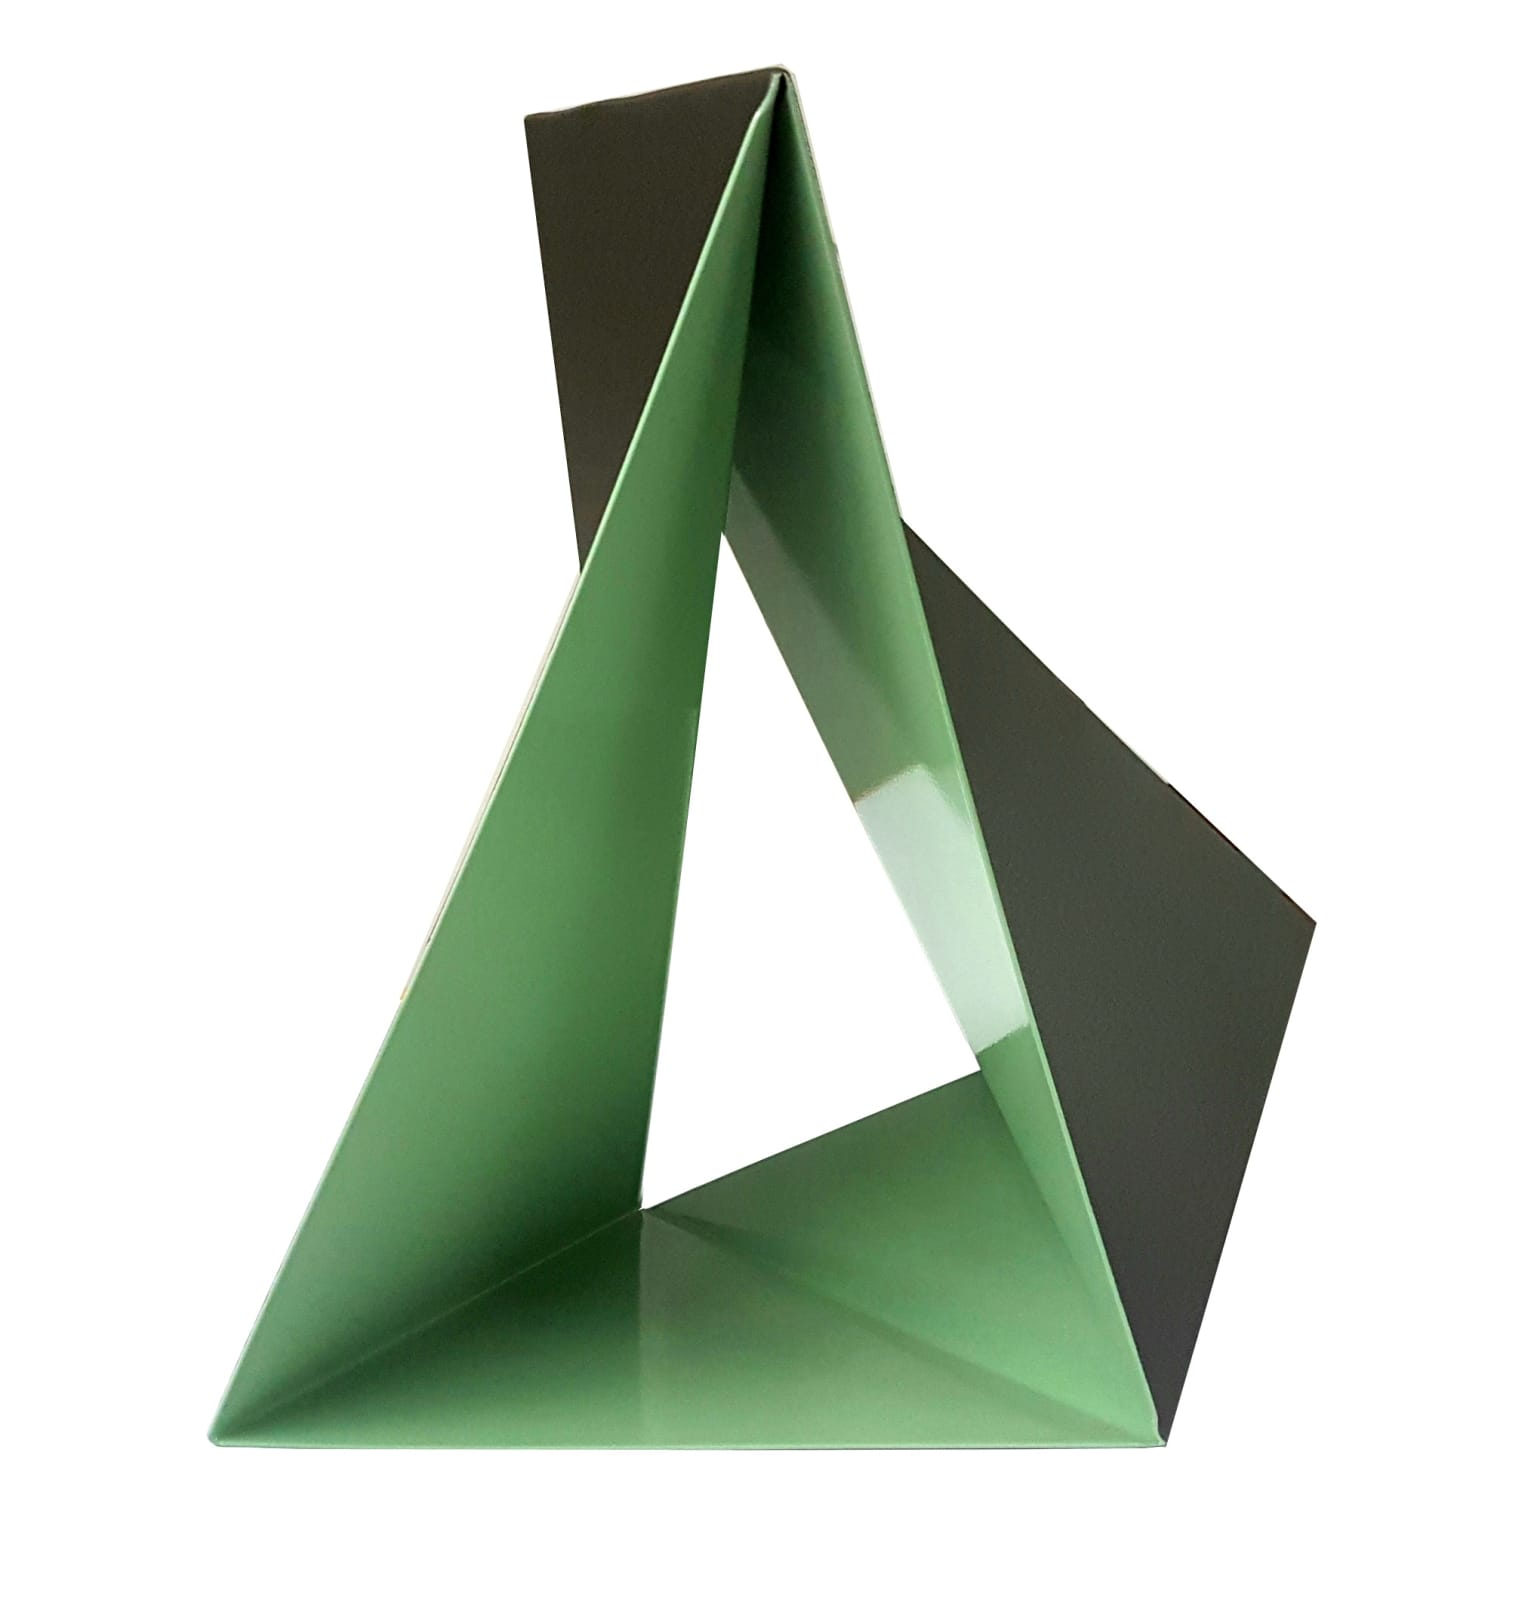 Origami Bicolor No.11, 2007 Cut and folded lacquered steel 15 7/10 in 40 cm Edition of 3